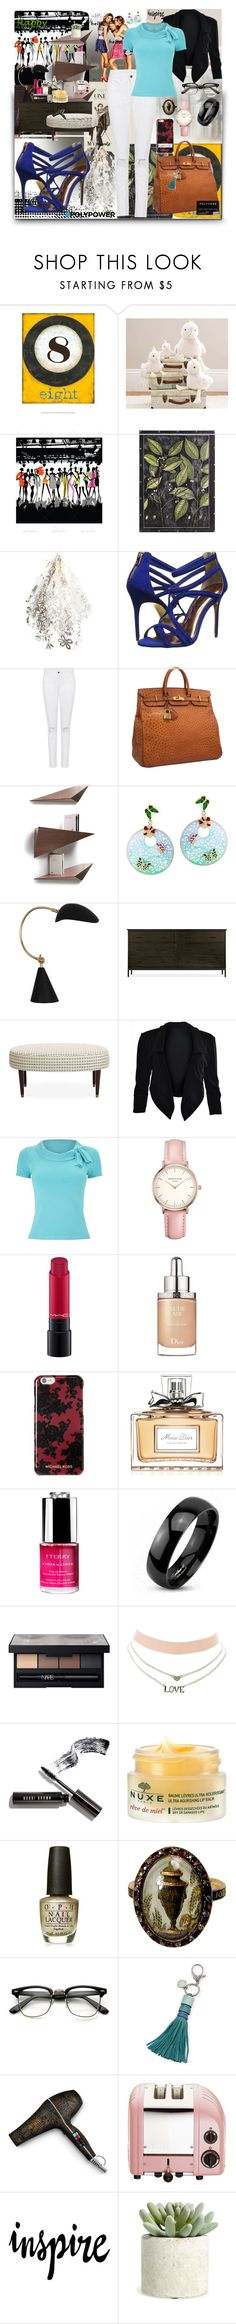 """Showdown"" by black-wings ❤ liked on Polyvore featuring Pier 1 Imports, Artecnica, Ted Baker, Hermès, Tonon, Robert Abbey, Precis Petite, Topshop, MAC Cosmetics and Christian Dior"